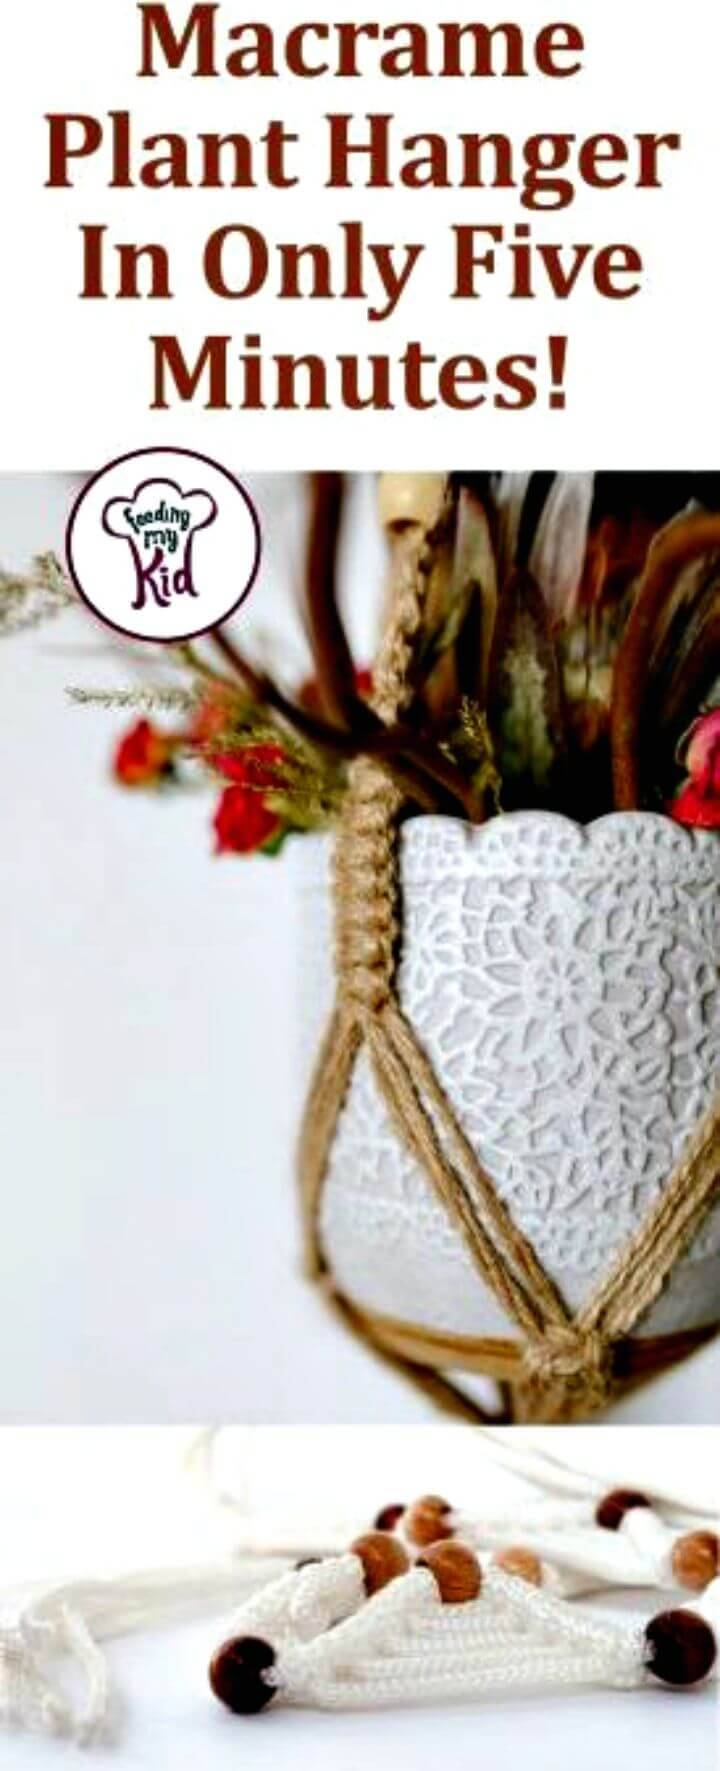 Make Macrame Plant Hanger In Only Five Minutes